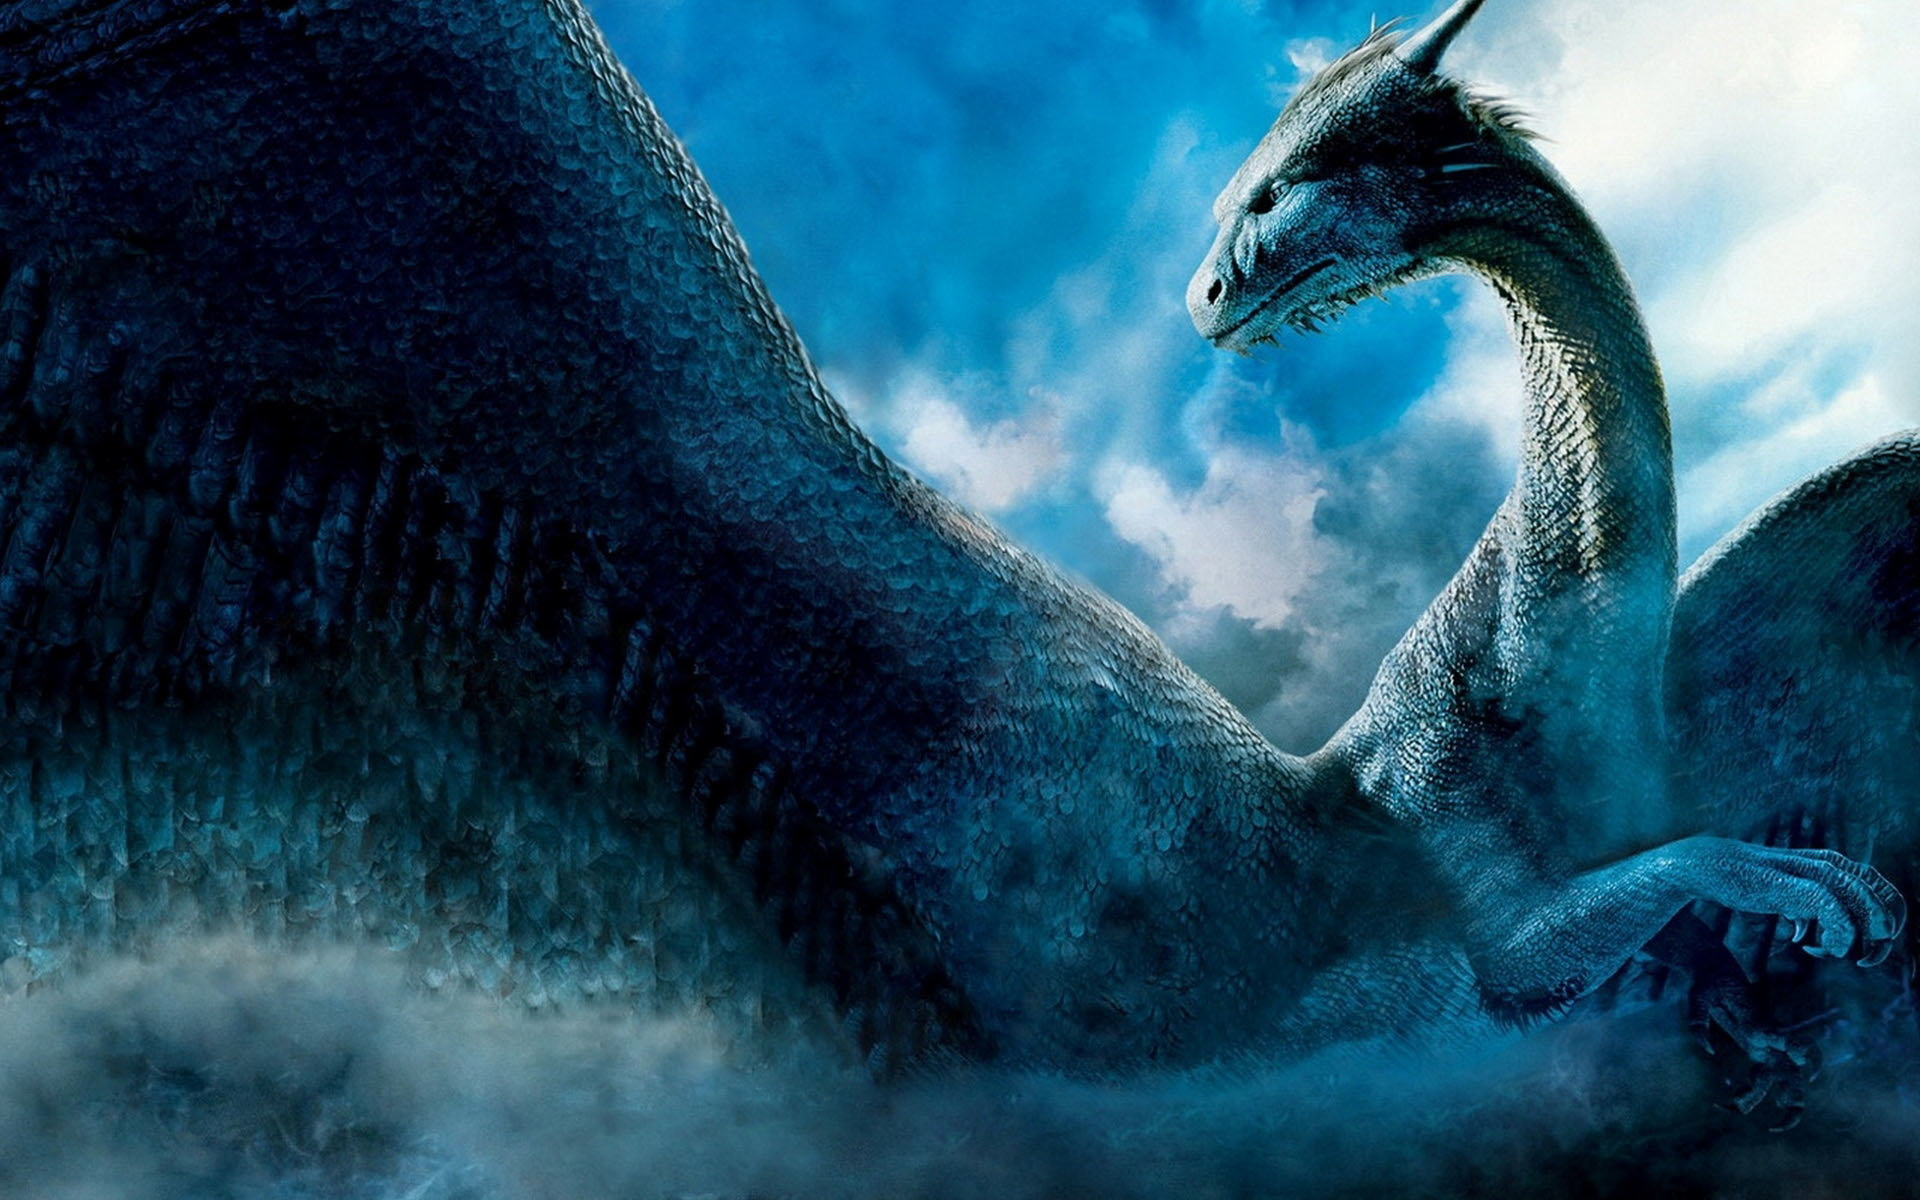 Free Eragon high quality wallpaper ID:67220 for hd 1920x1200 desktop